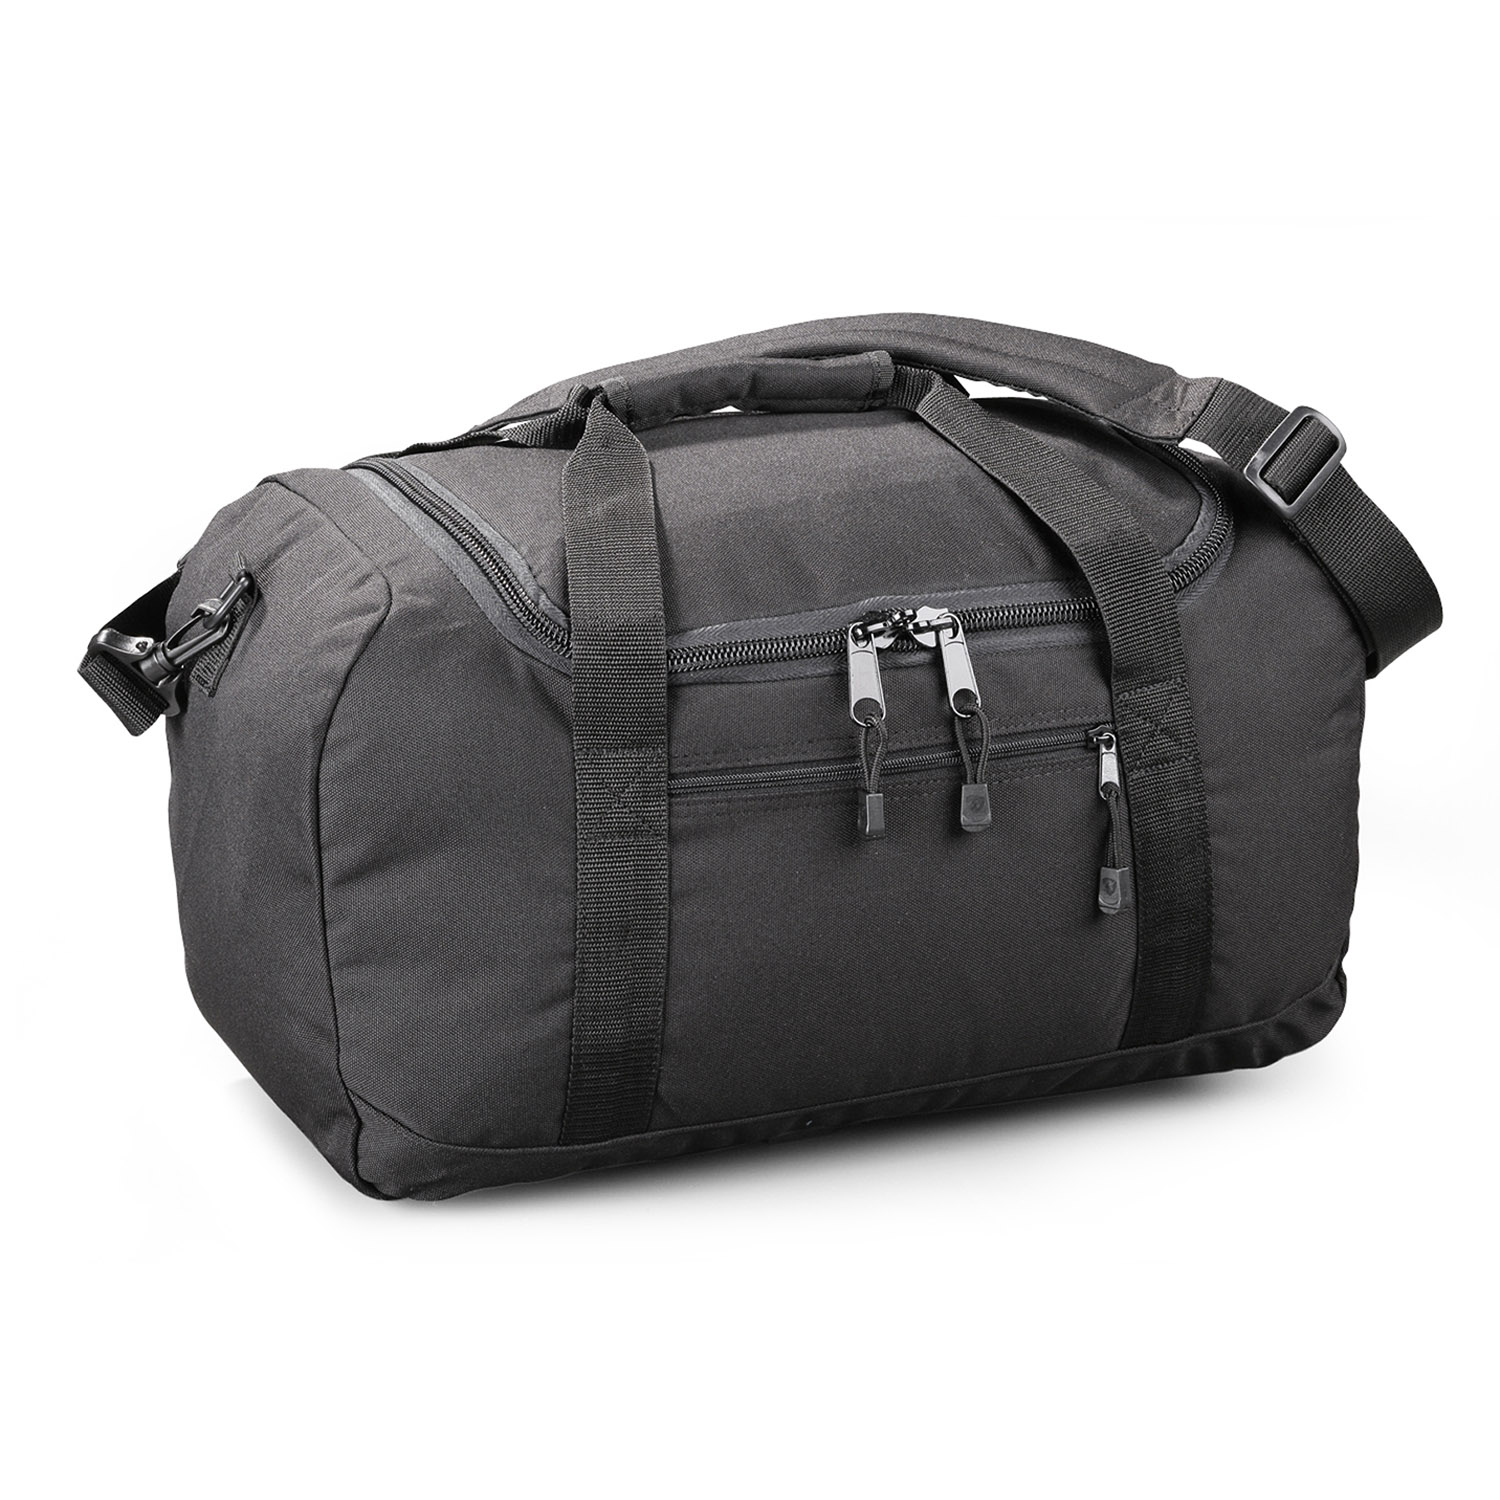 Galls Duffel Bag